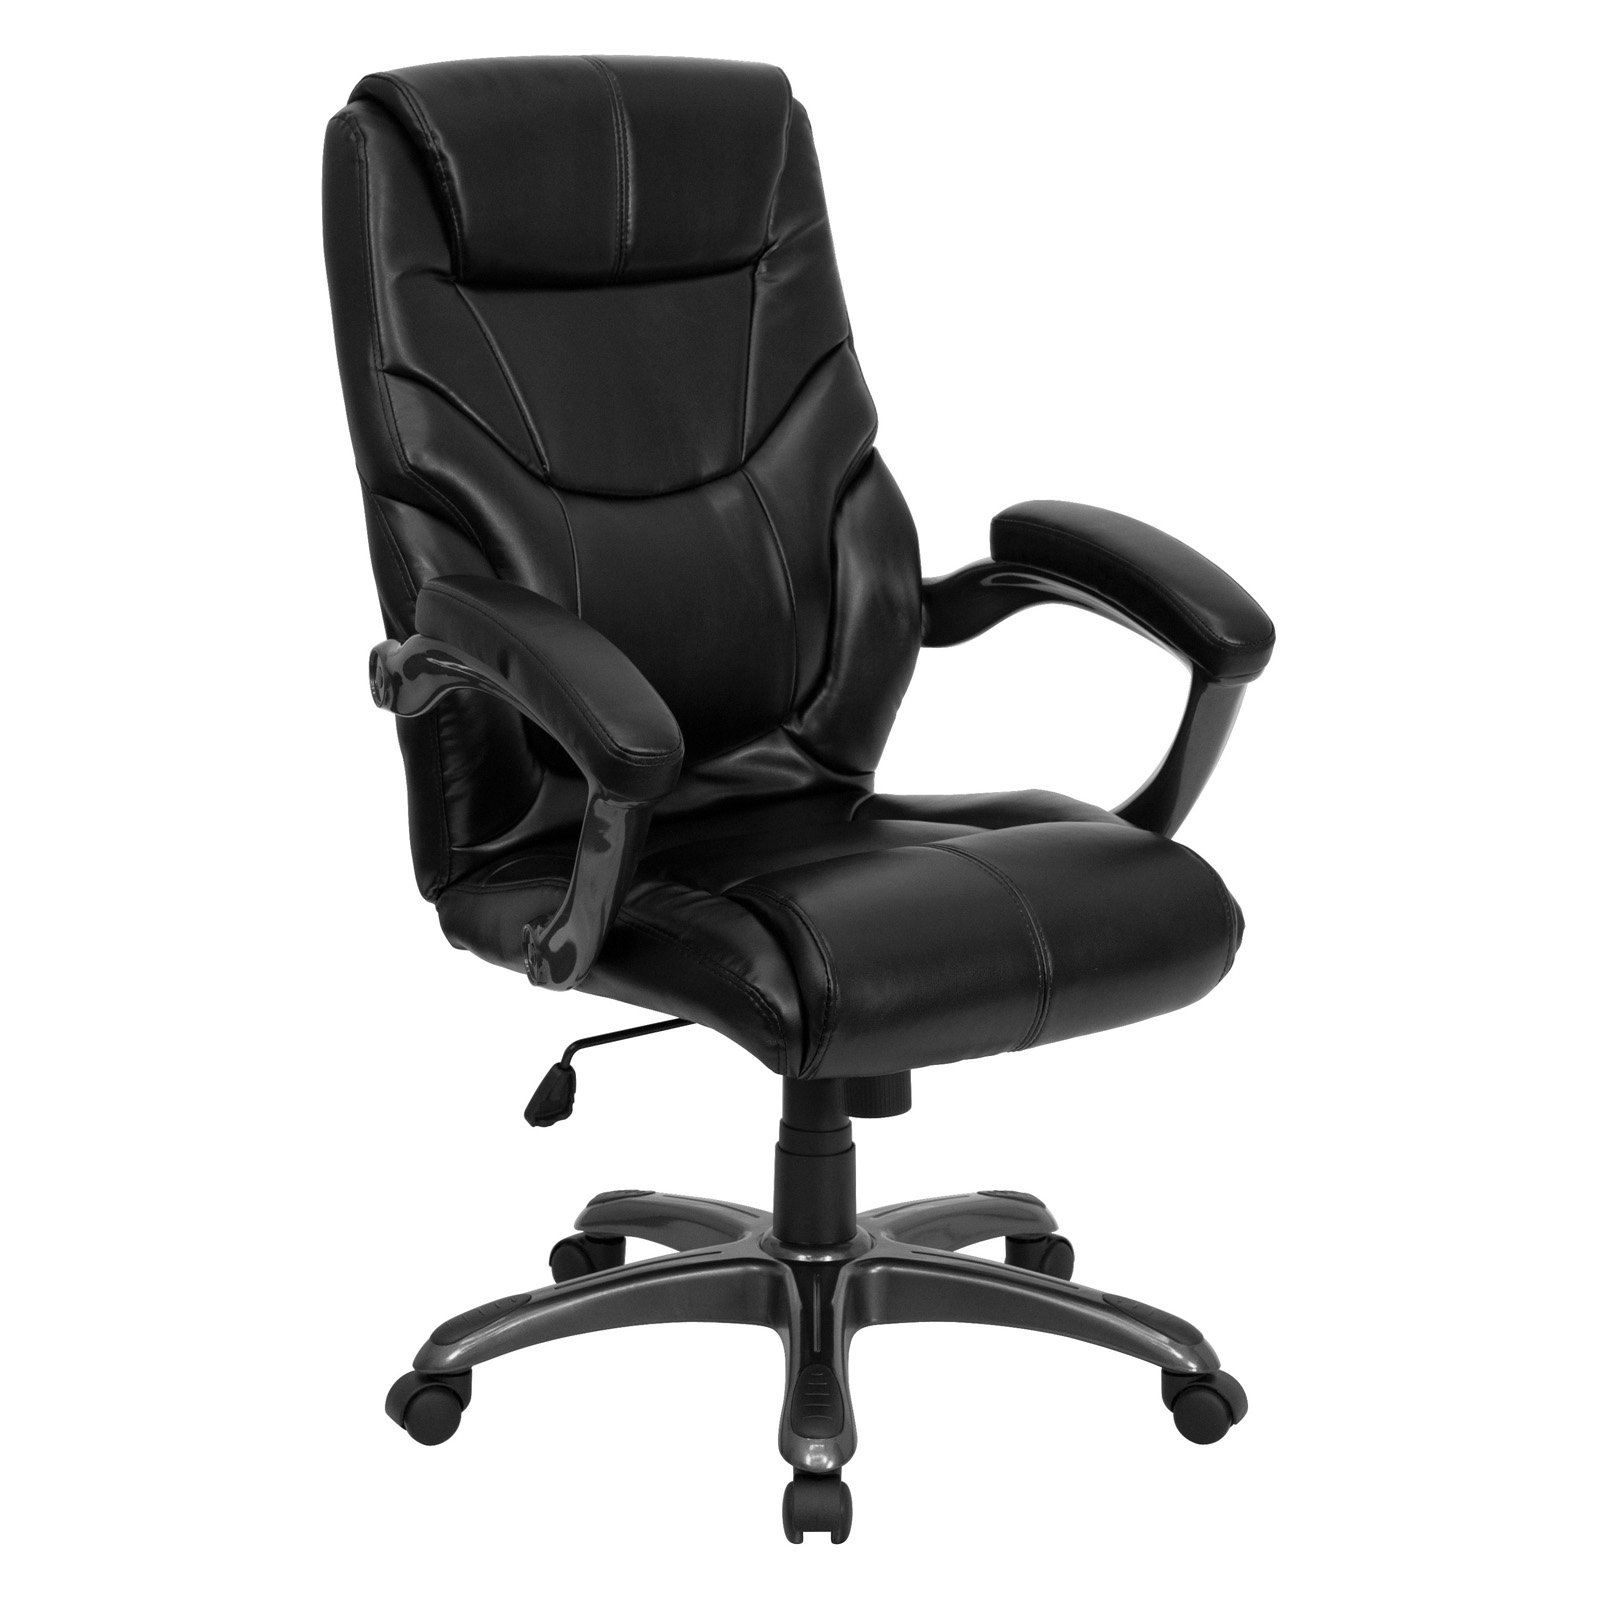 Contemporary Leather High-Back Office Chair, Black